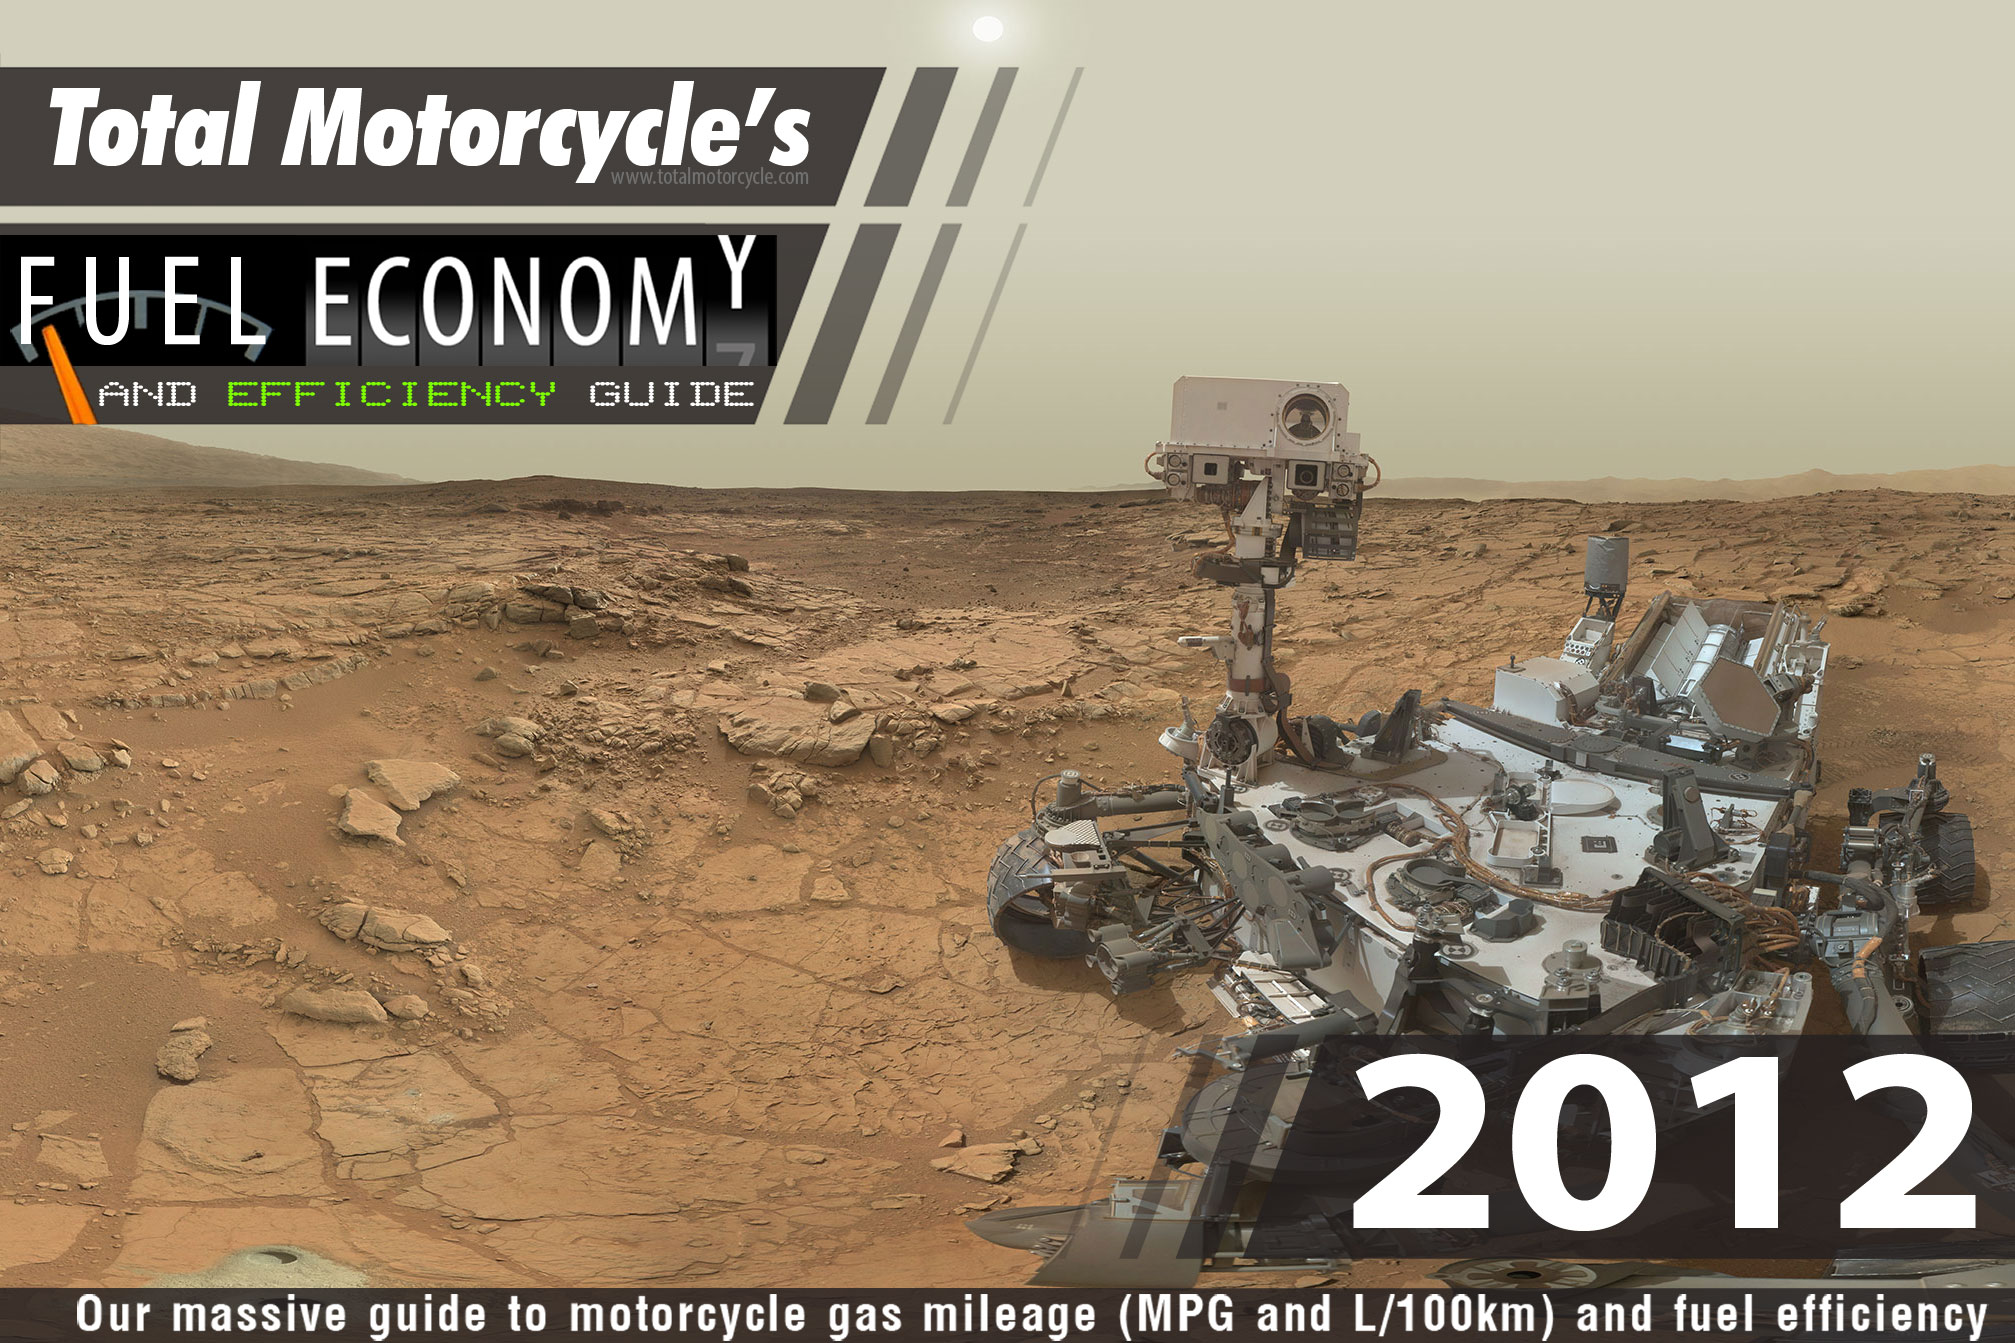 2012 Motorcycle Model Fuel Economy Guide in MPG and L/100km